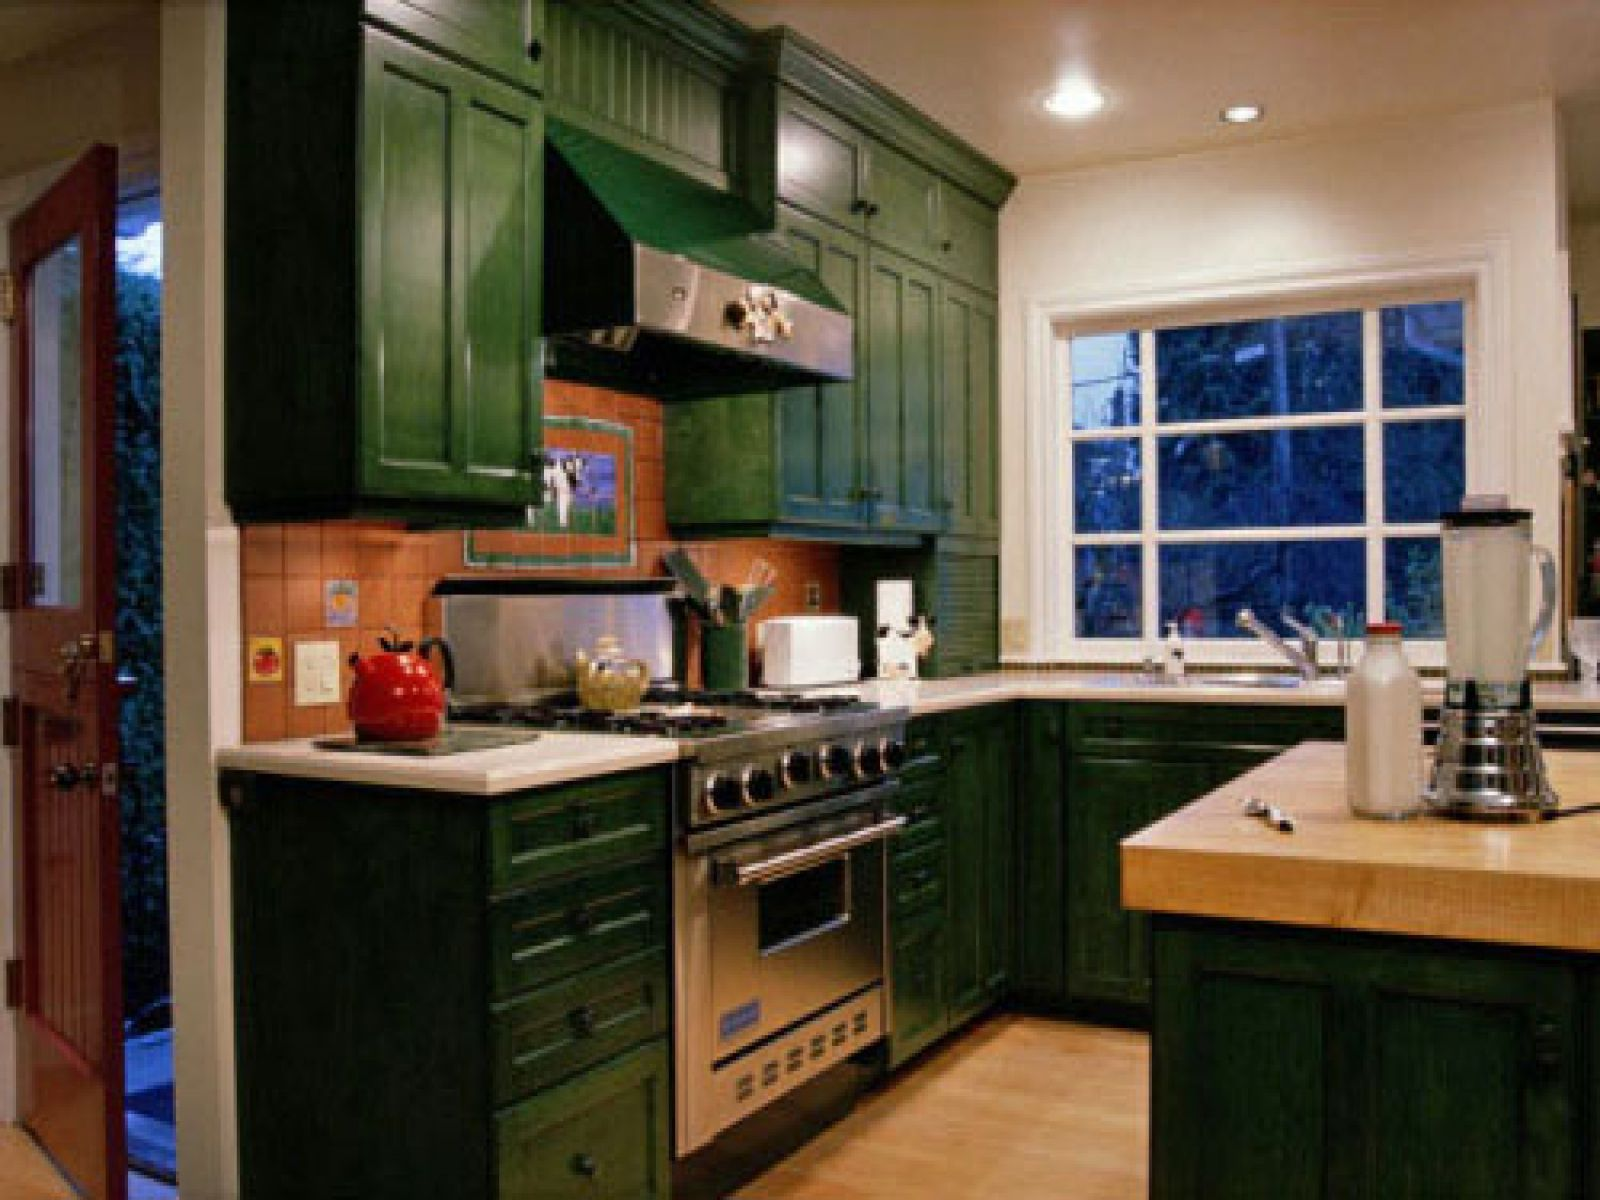 Green kitchen cabinets for eco friendly homeowners for Green kitchen cabinets